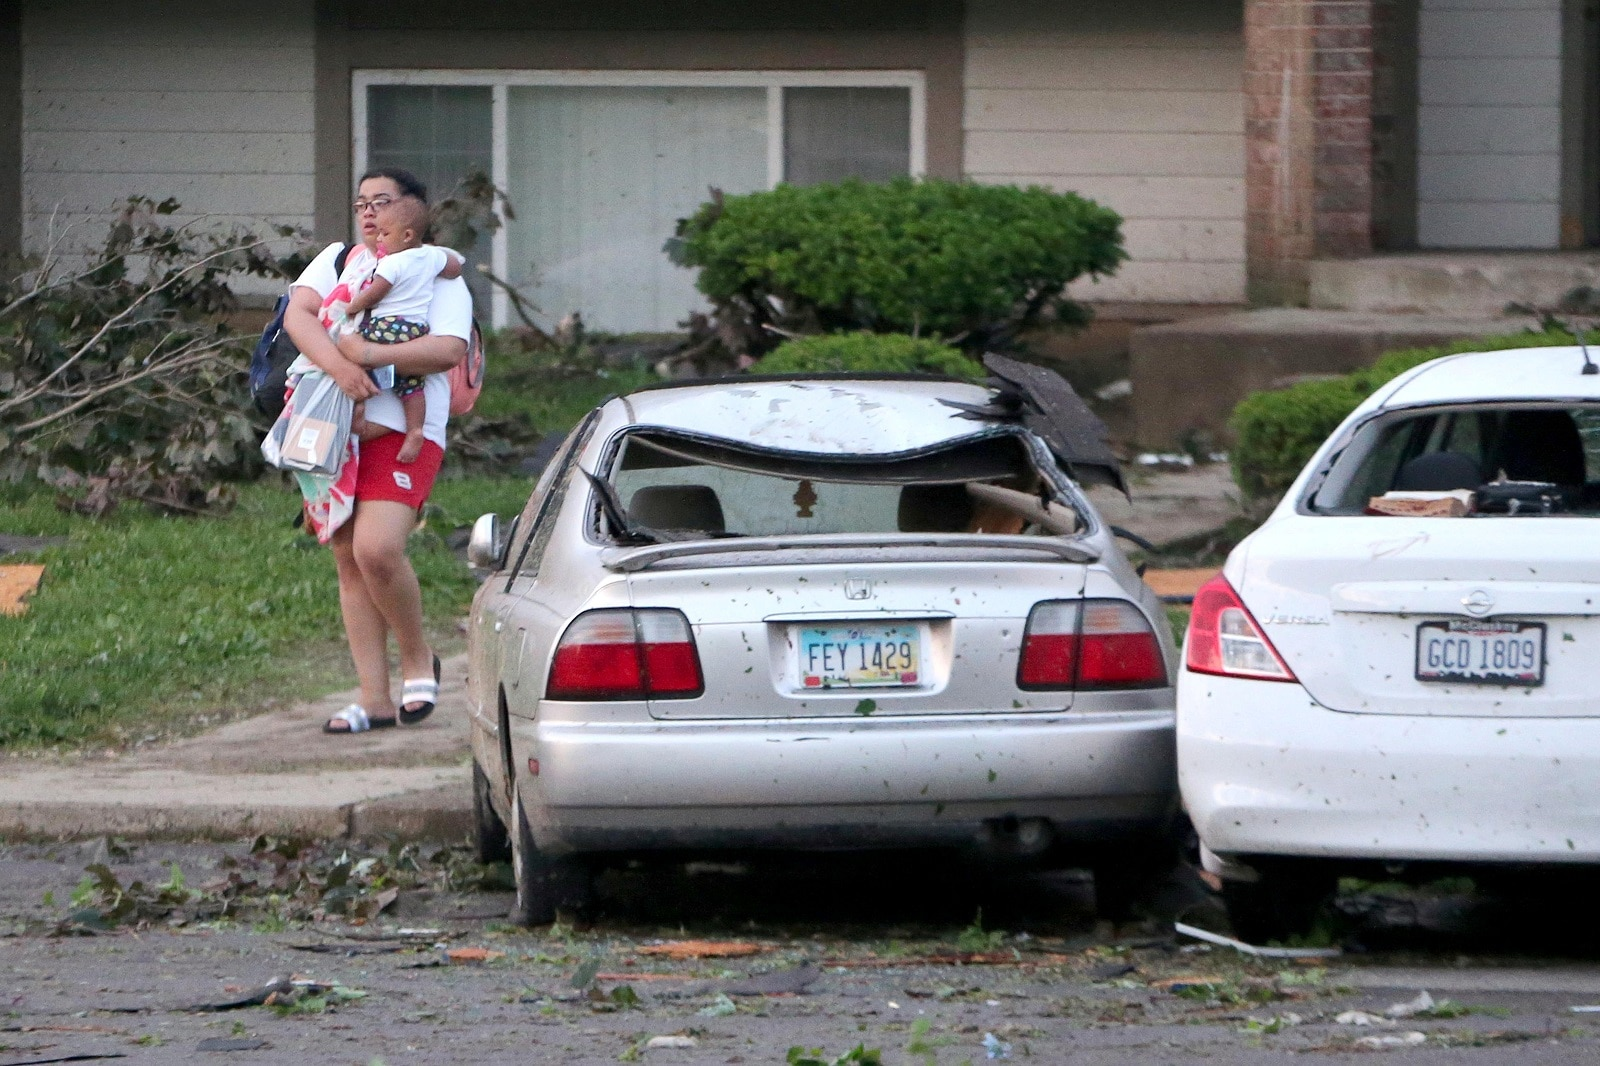 A woman leaves her apartment with a small child the morning after a tornado touched down overnight in Trotwood near Dayton, Ohio, US May 28, 2019. REUTERS/Aaron Josefczyk